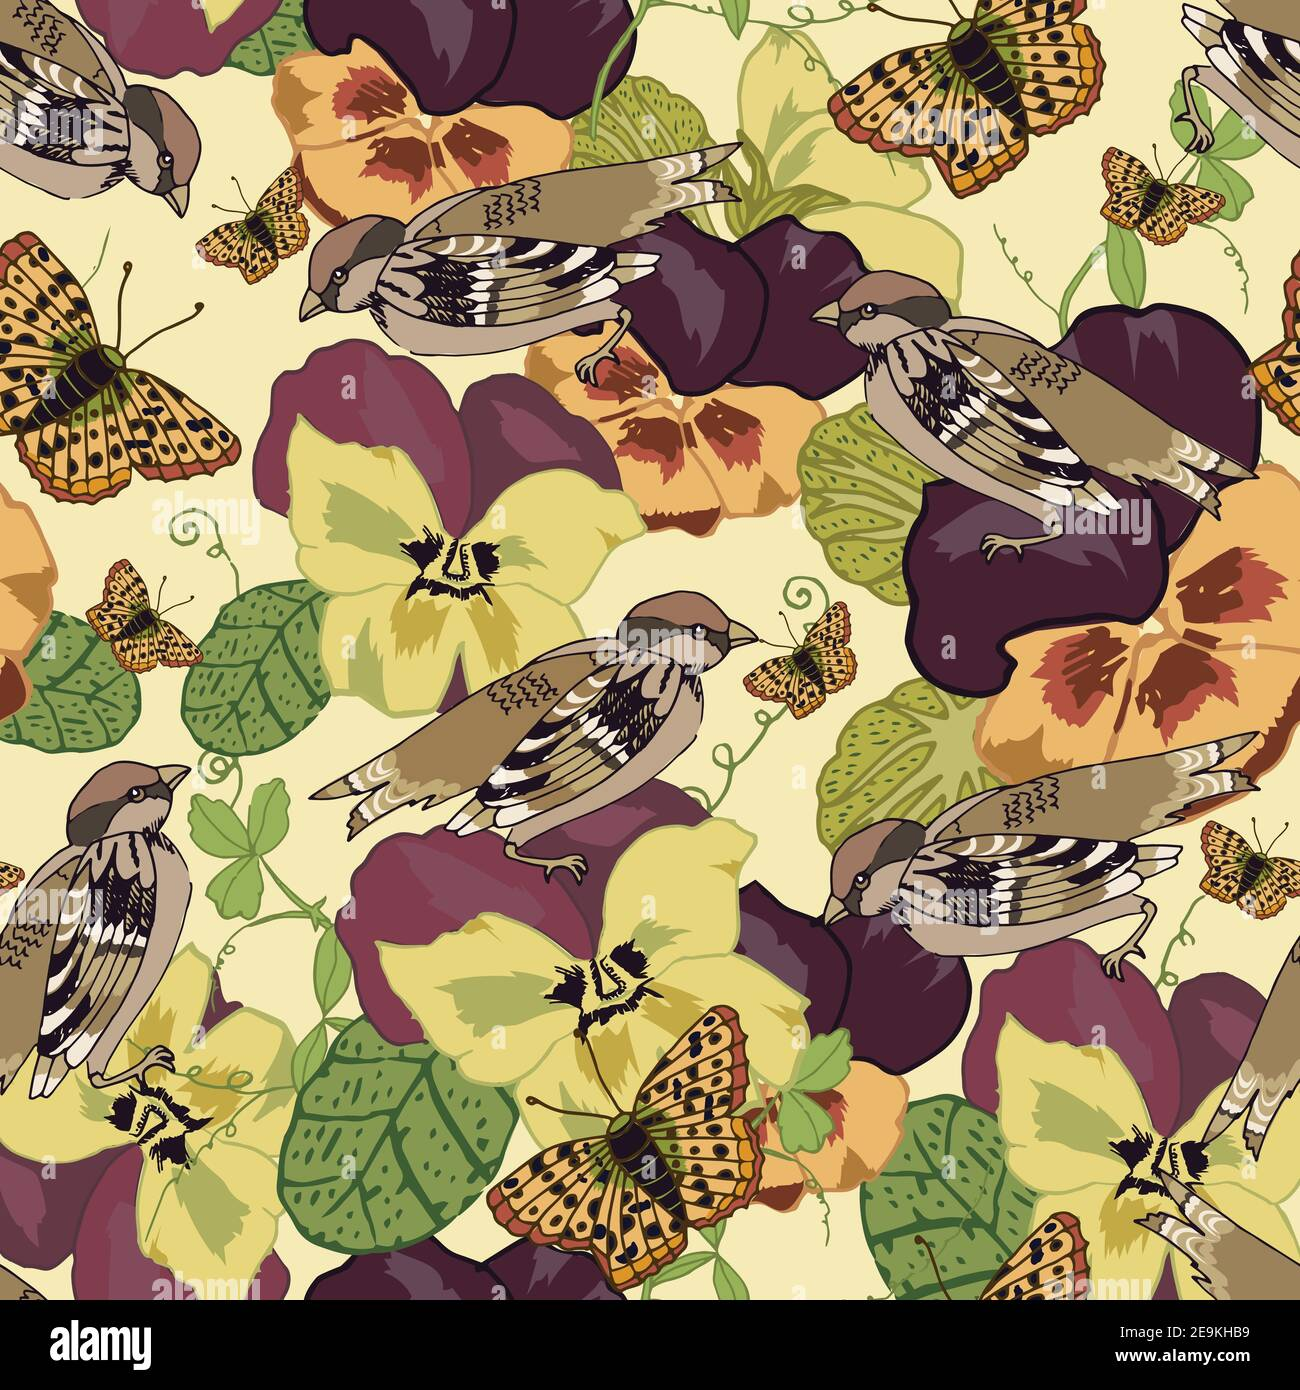 Vintage flowers seamless pattern with pansy petunia viola butterflies and sparrow birds vector illustration Stock Vector